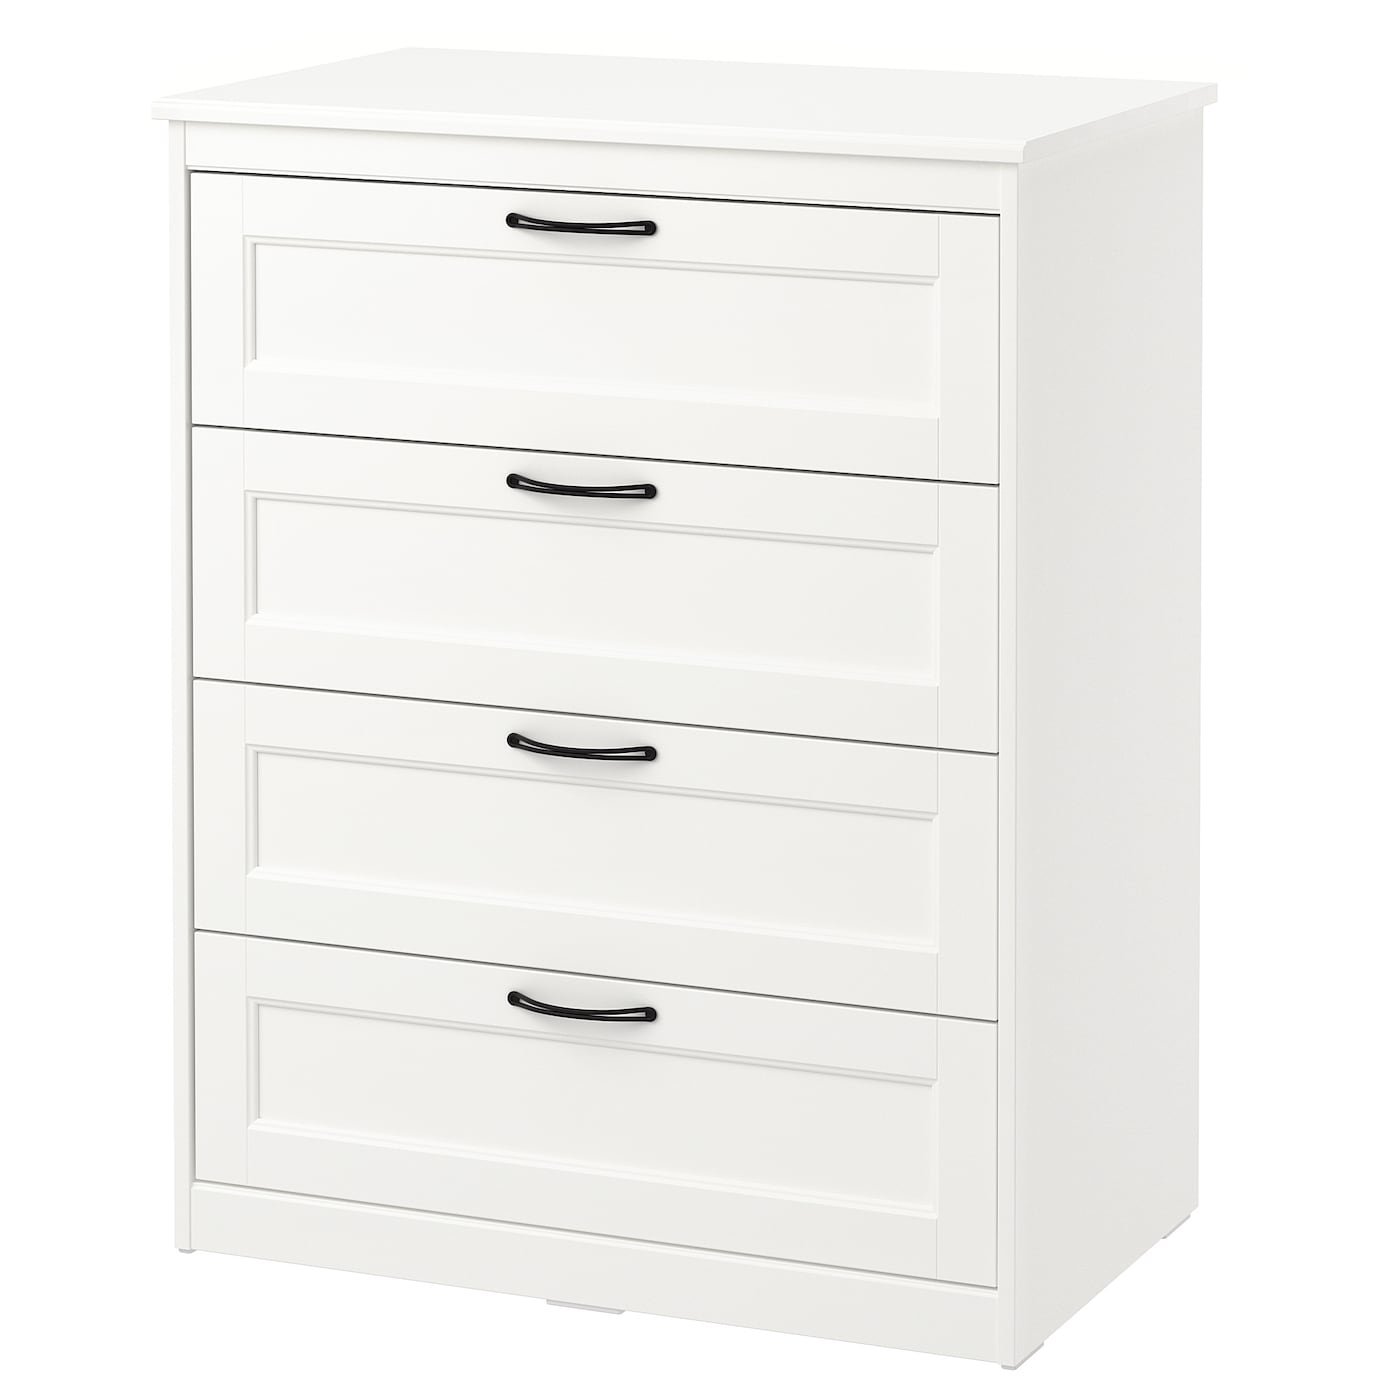 IKEA SONGESAND chest of 4 drawers Smooth running drawers with pull-out stop.